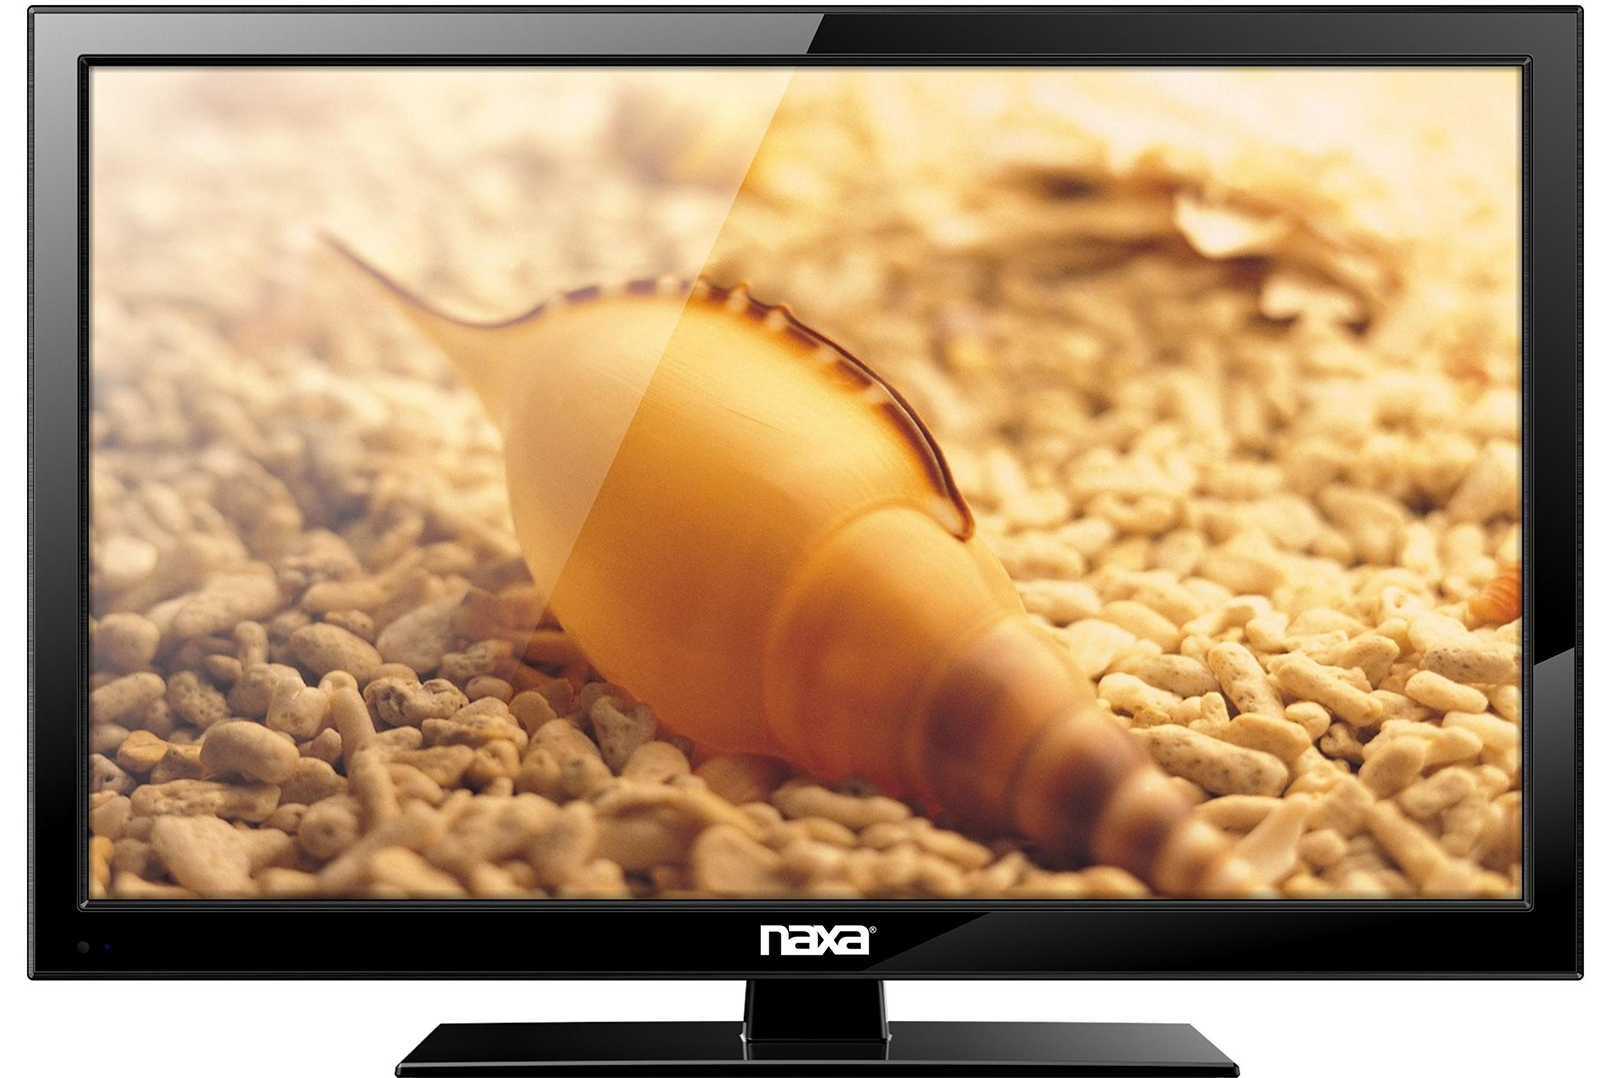 19″ Class LED TV and Media Player